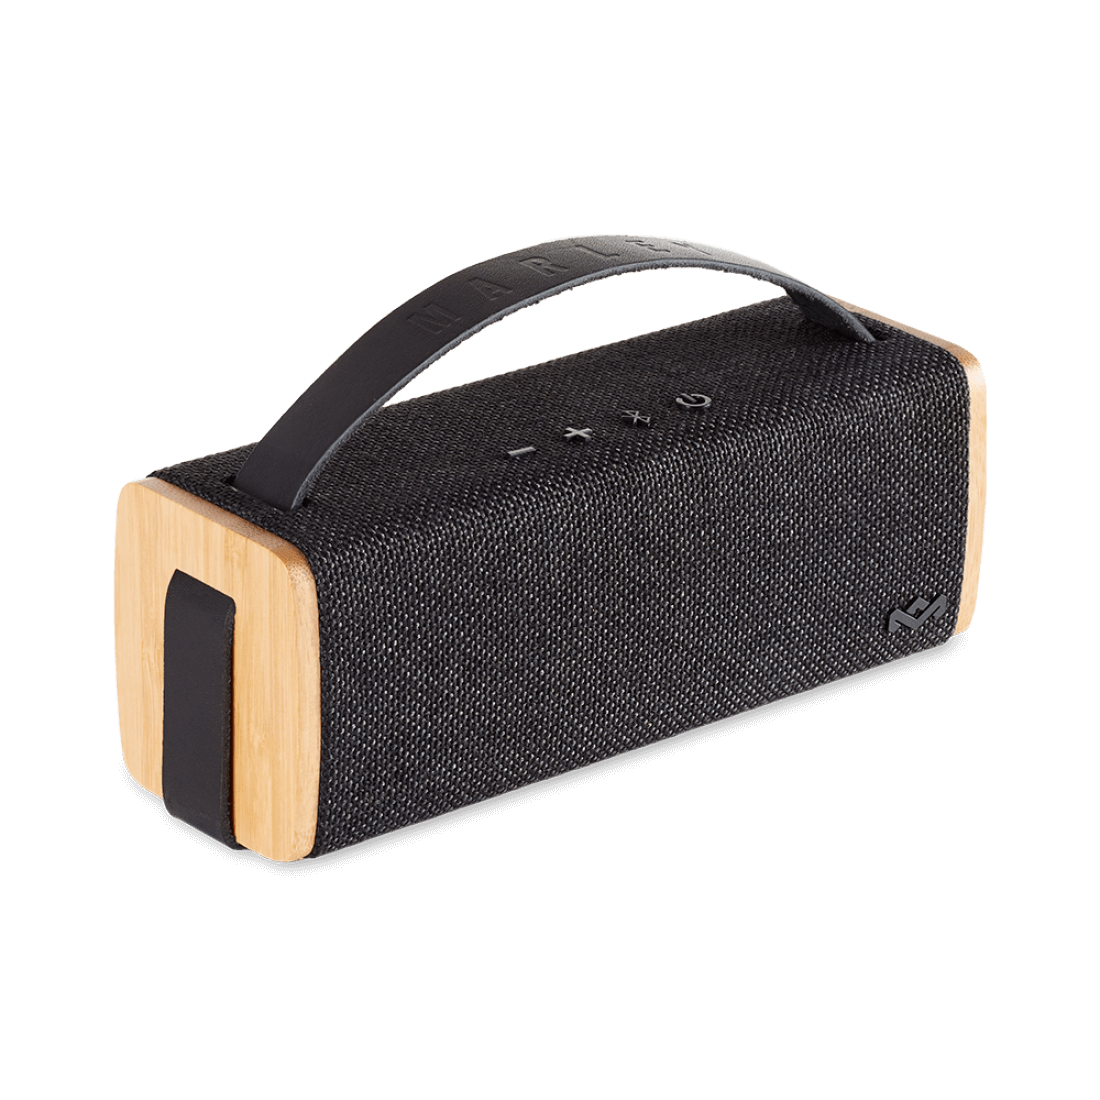 House of Marley Riddim Portable Bluetooth Speaker